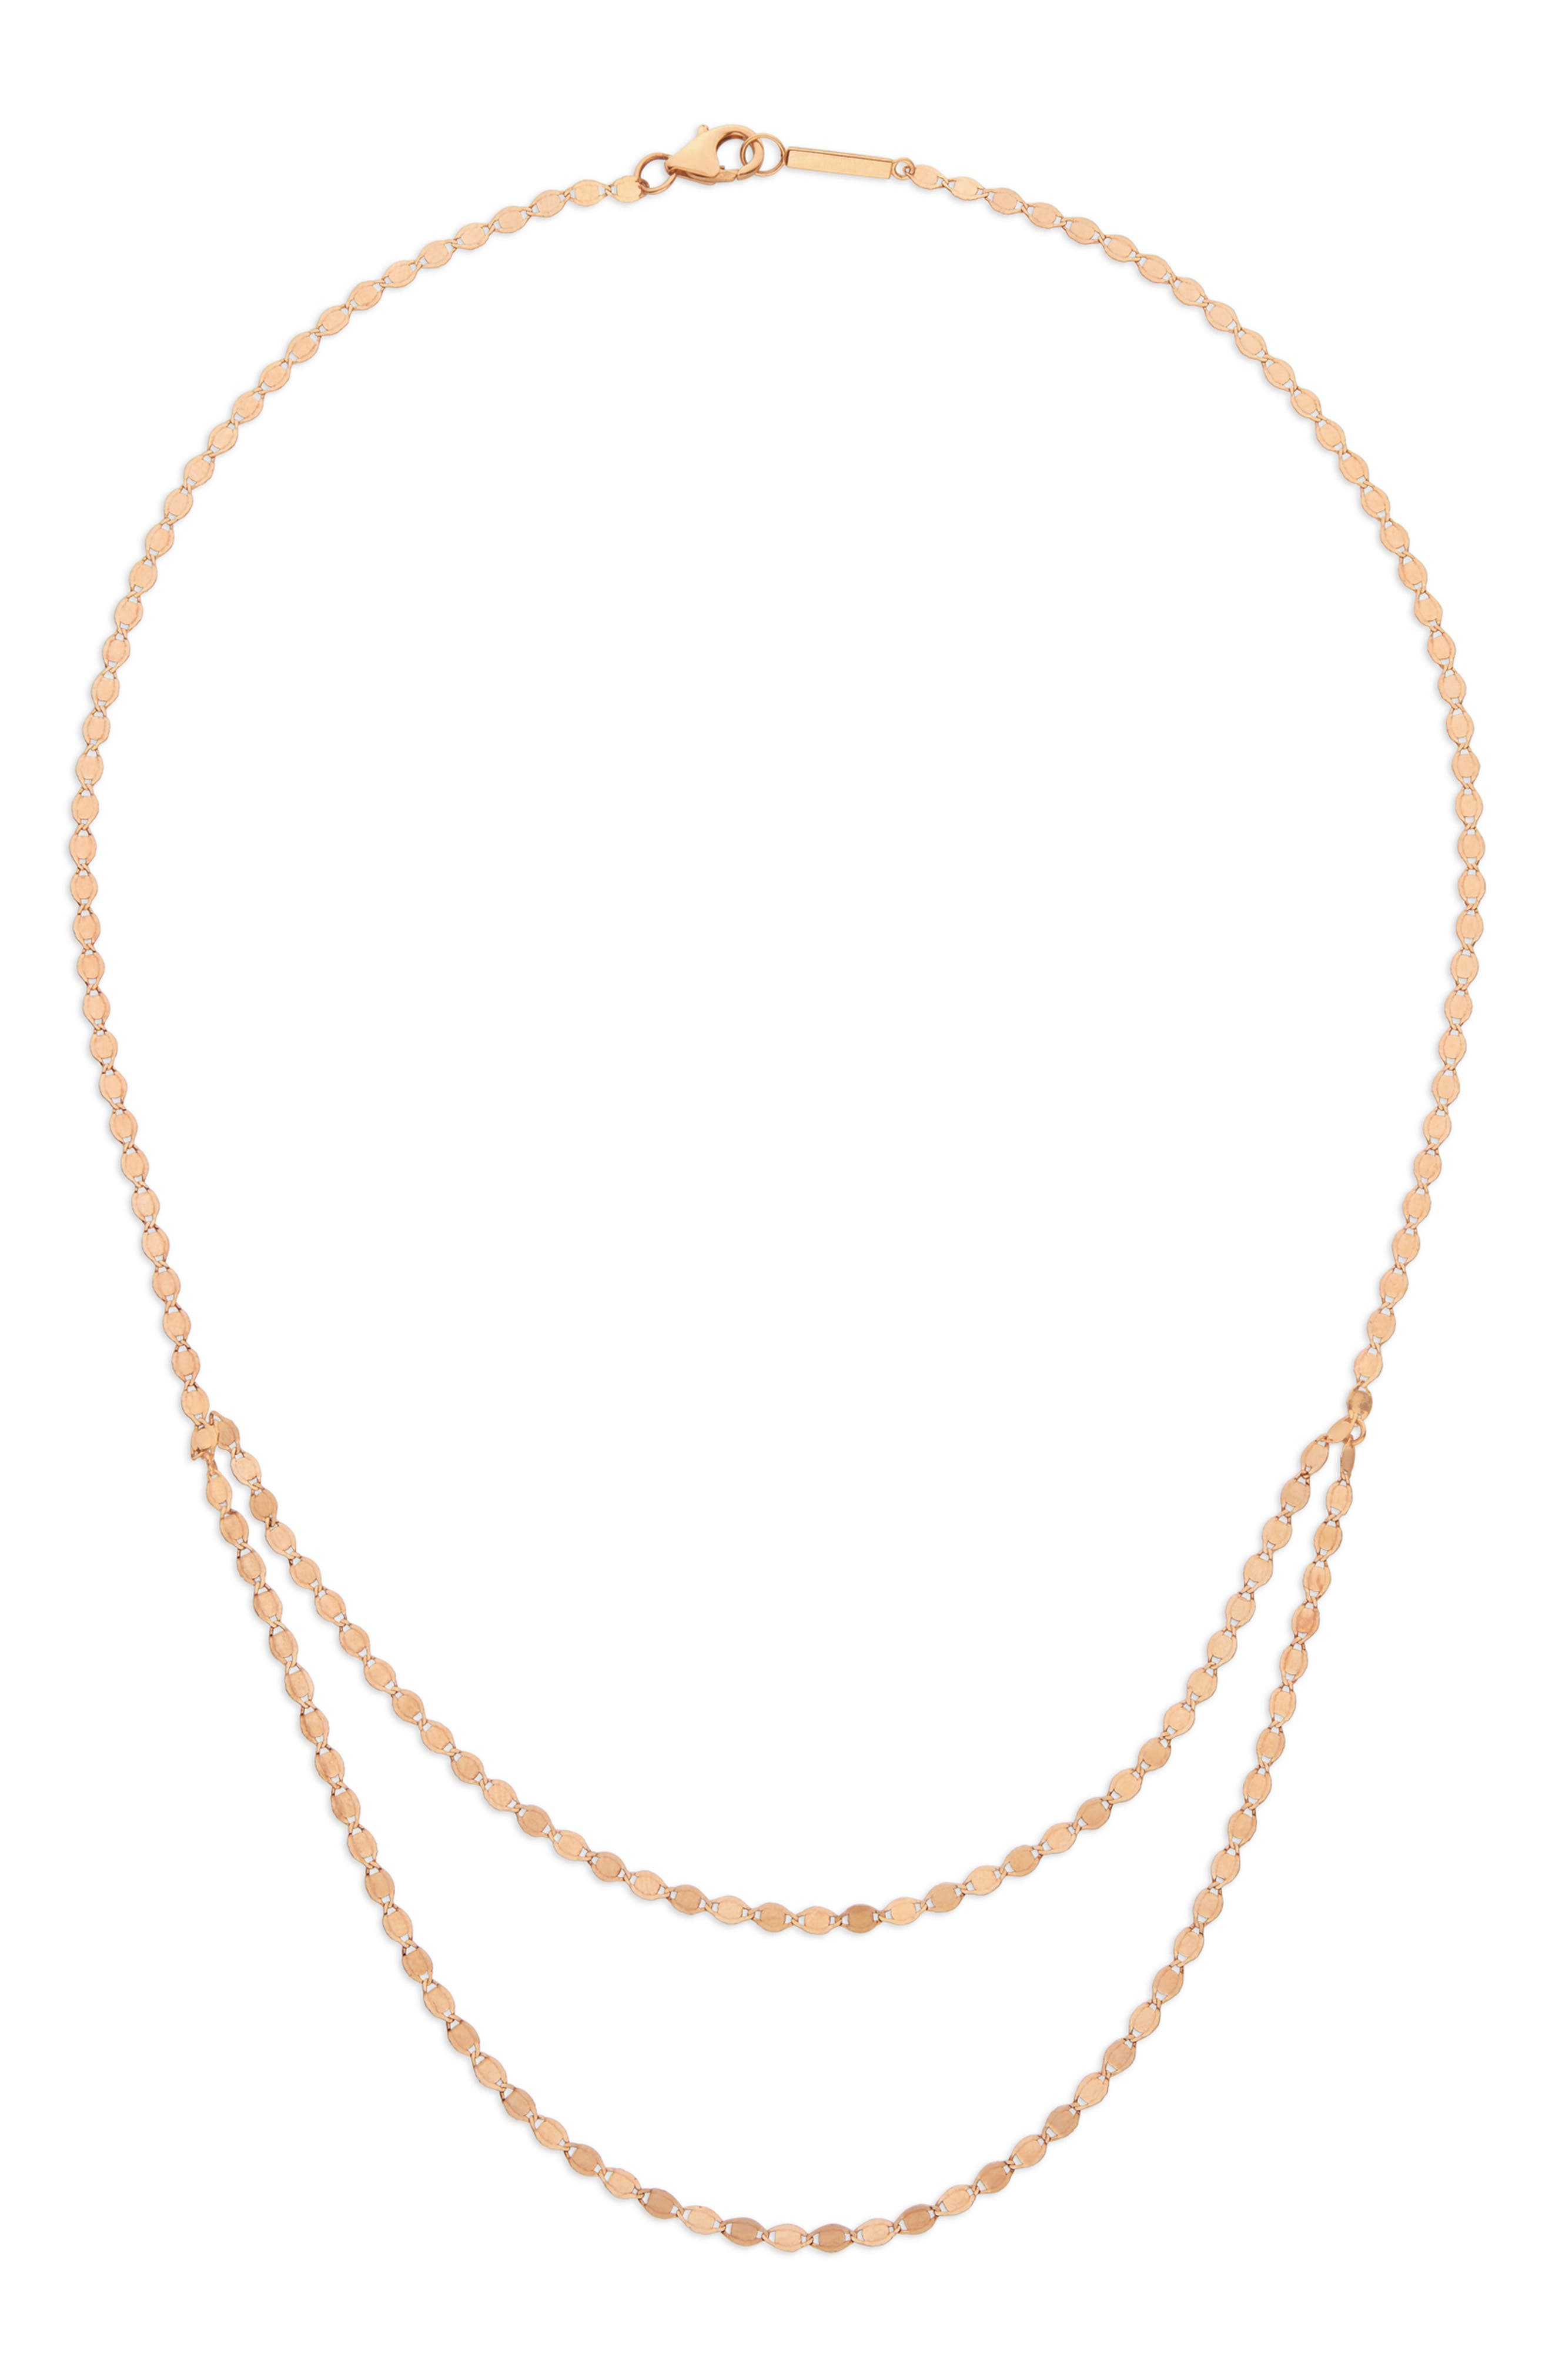 Alternate Image 1 Selected - Lana Jewelry Blake Double Layer Long Necklace